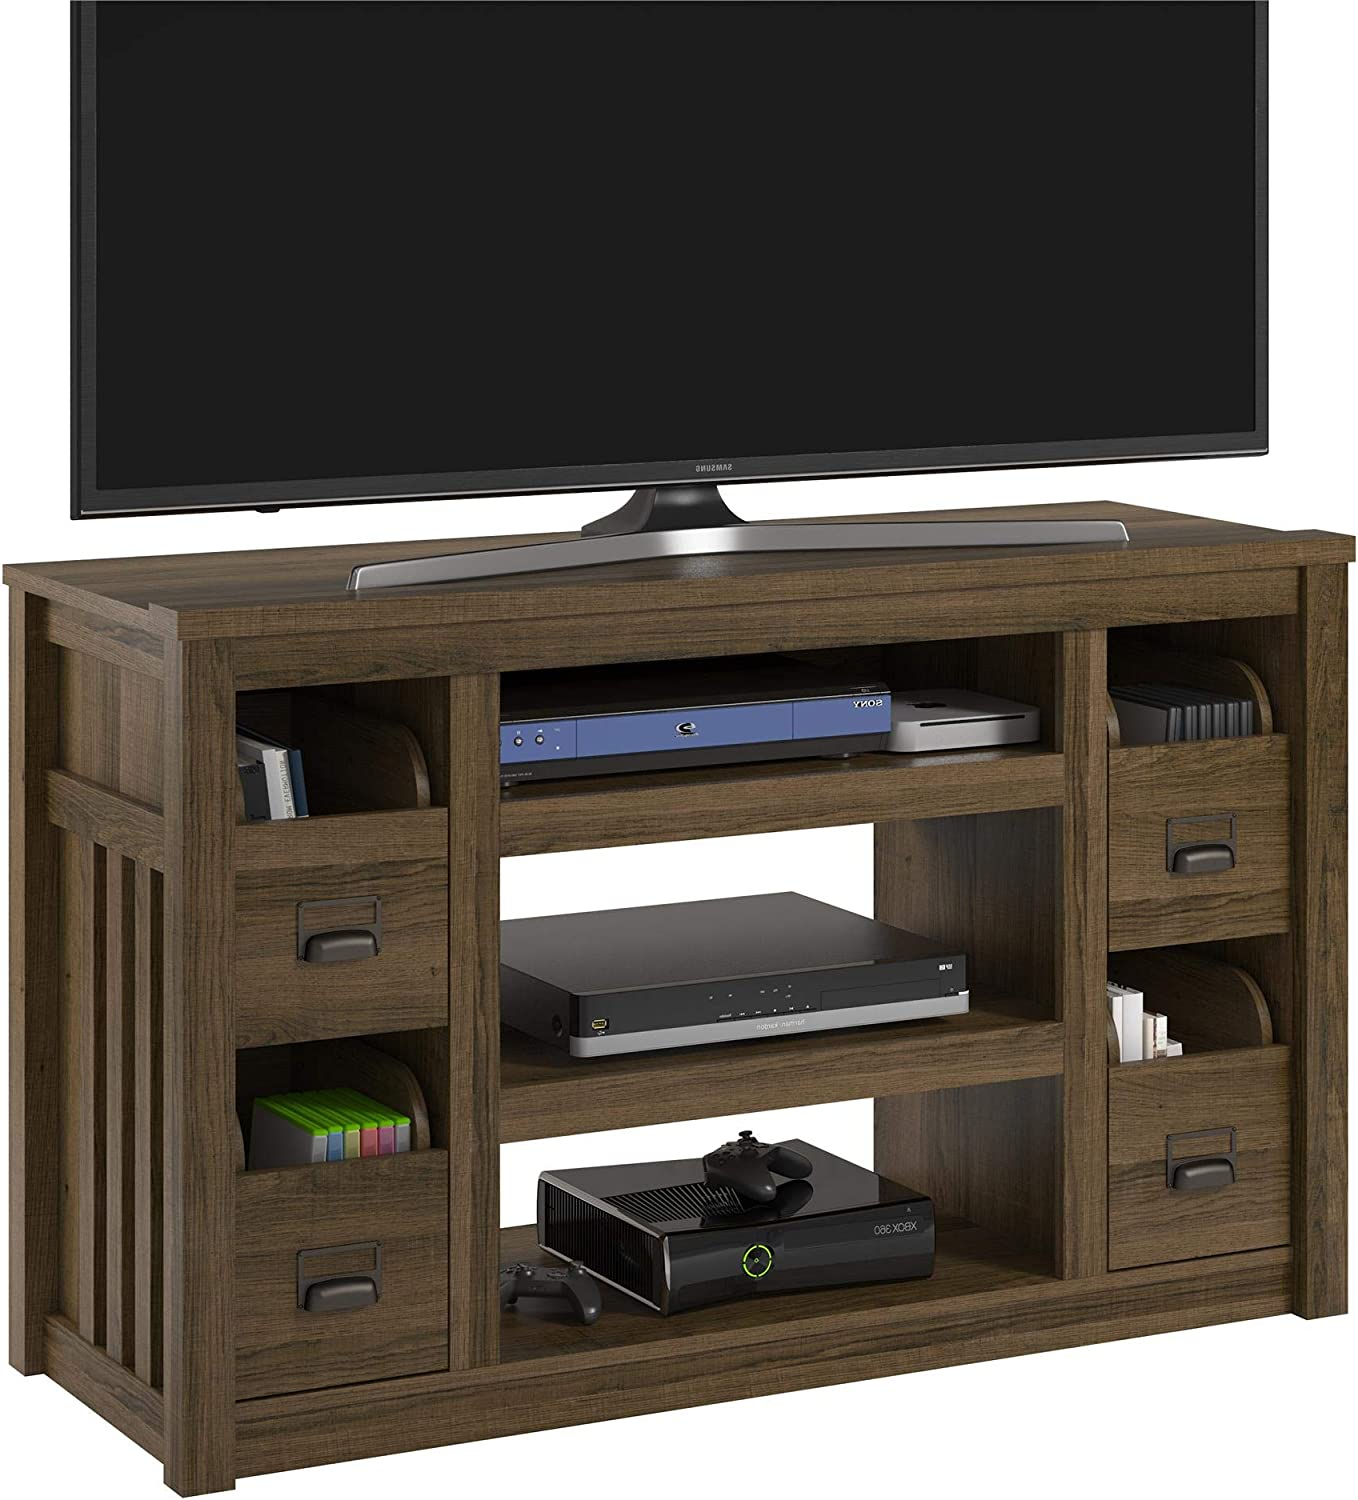 Ameriwood Home Adams TV Stand for TVs up to 55